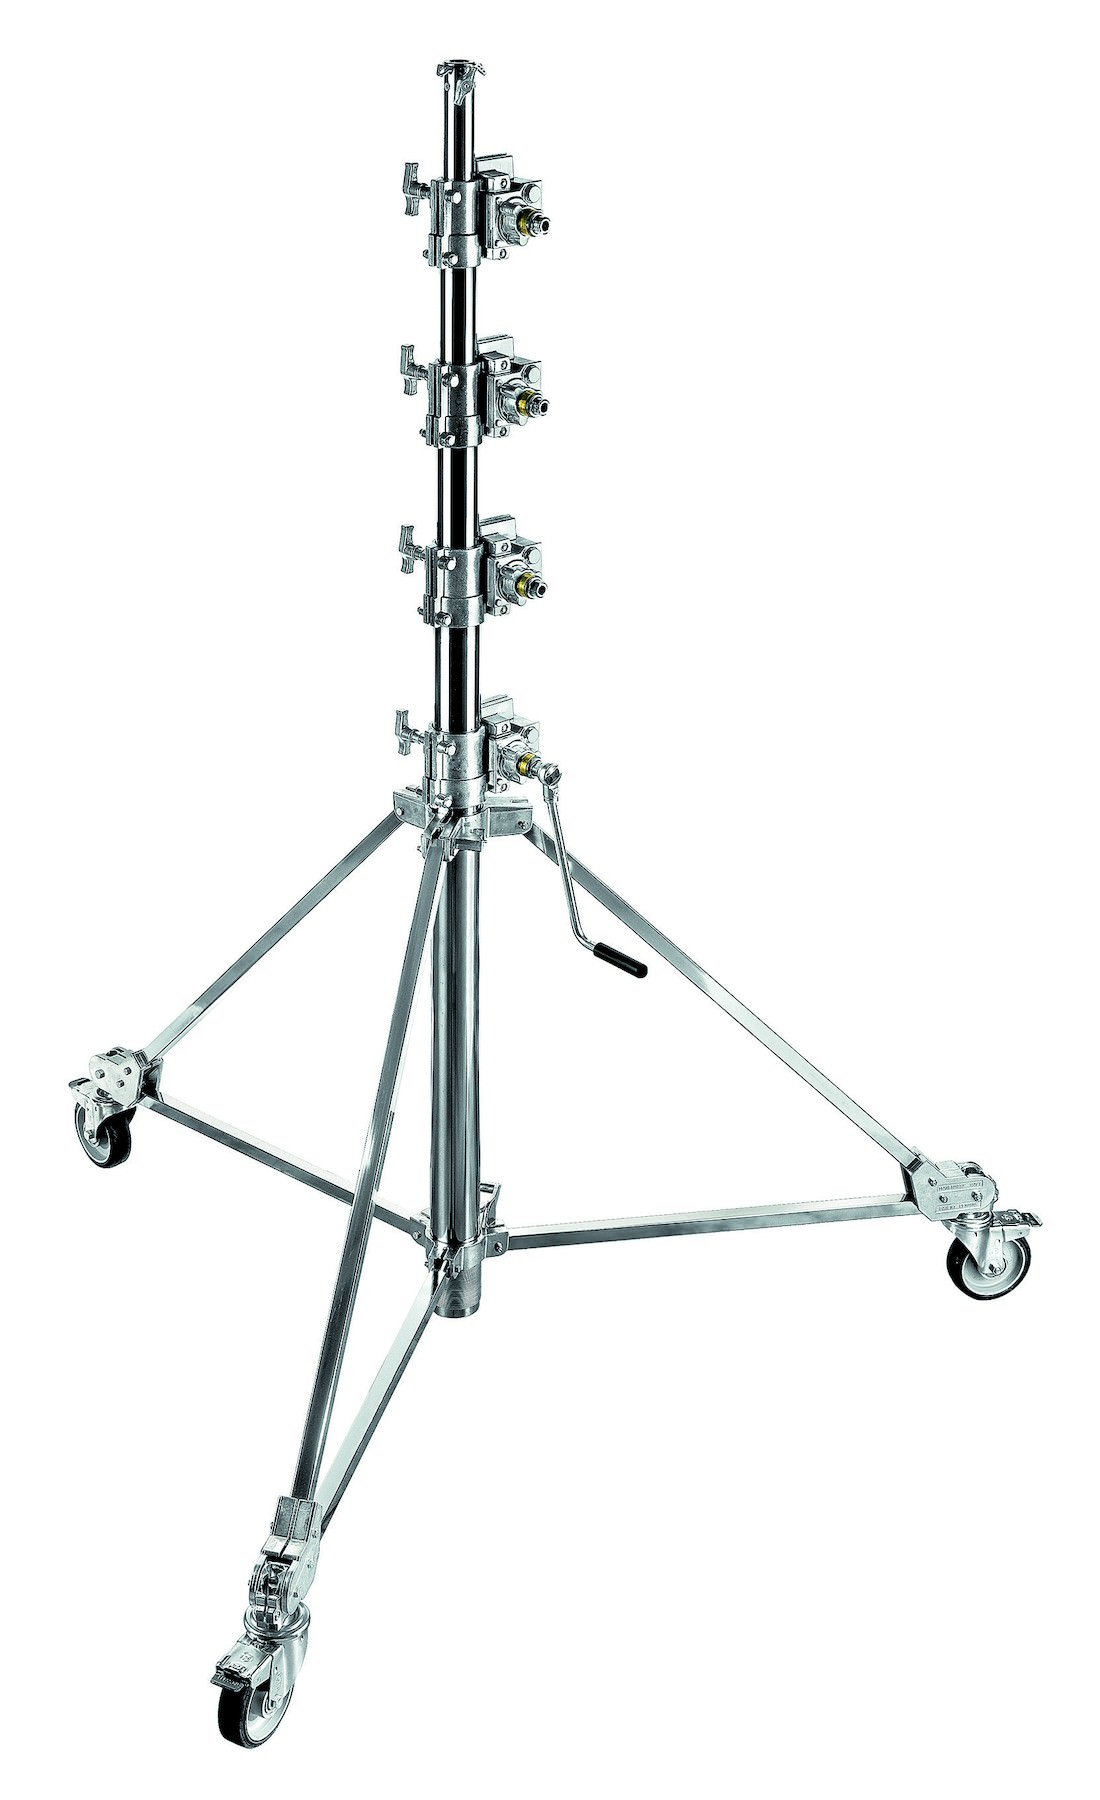 Manfrotto Stand wind-up 39, chrome, 3 sections; 1.8-3.7m; 16mm/28mm; max load 30kg (Avec roues)